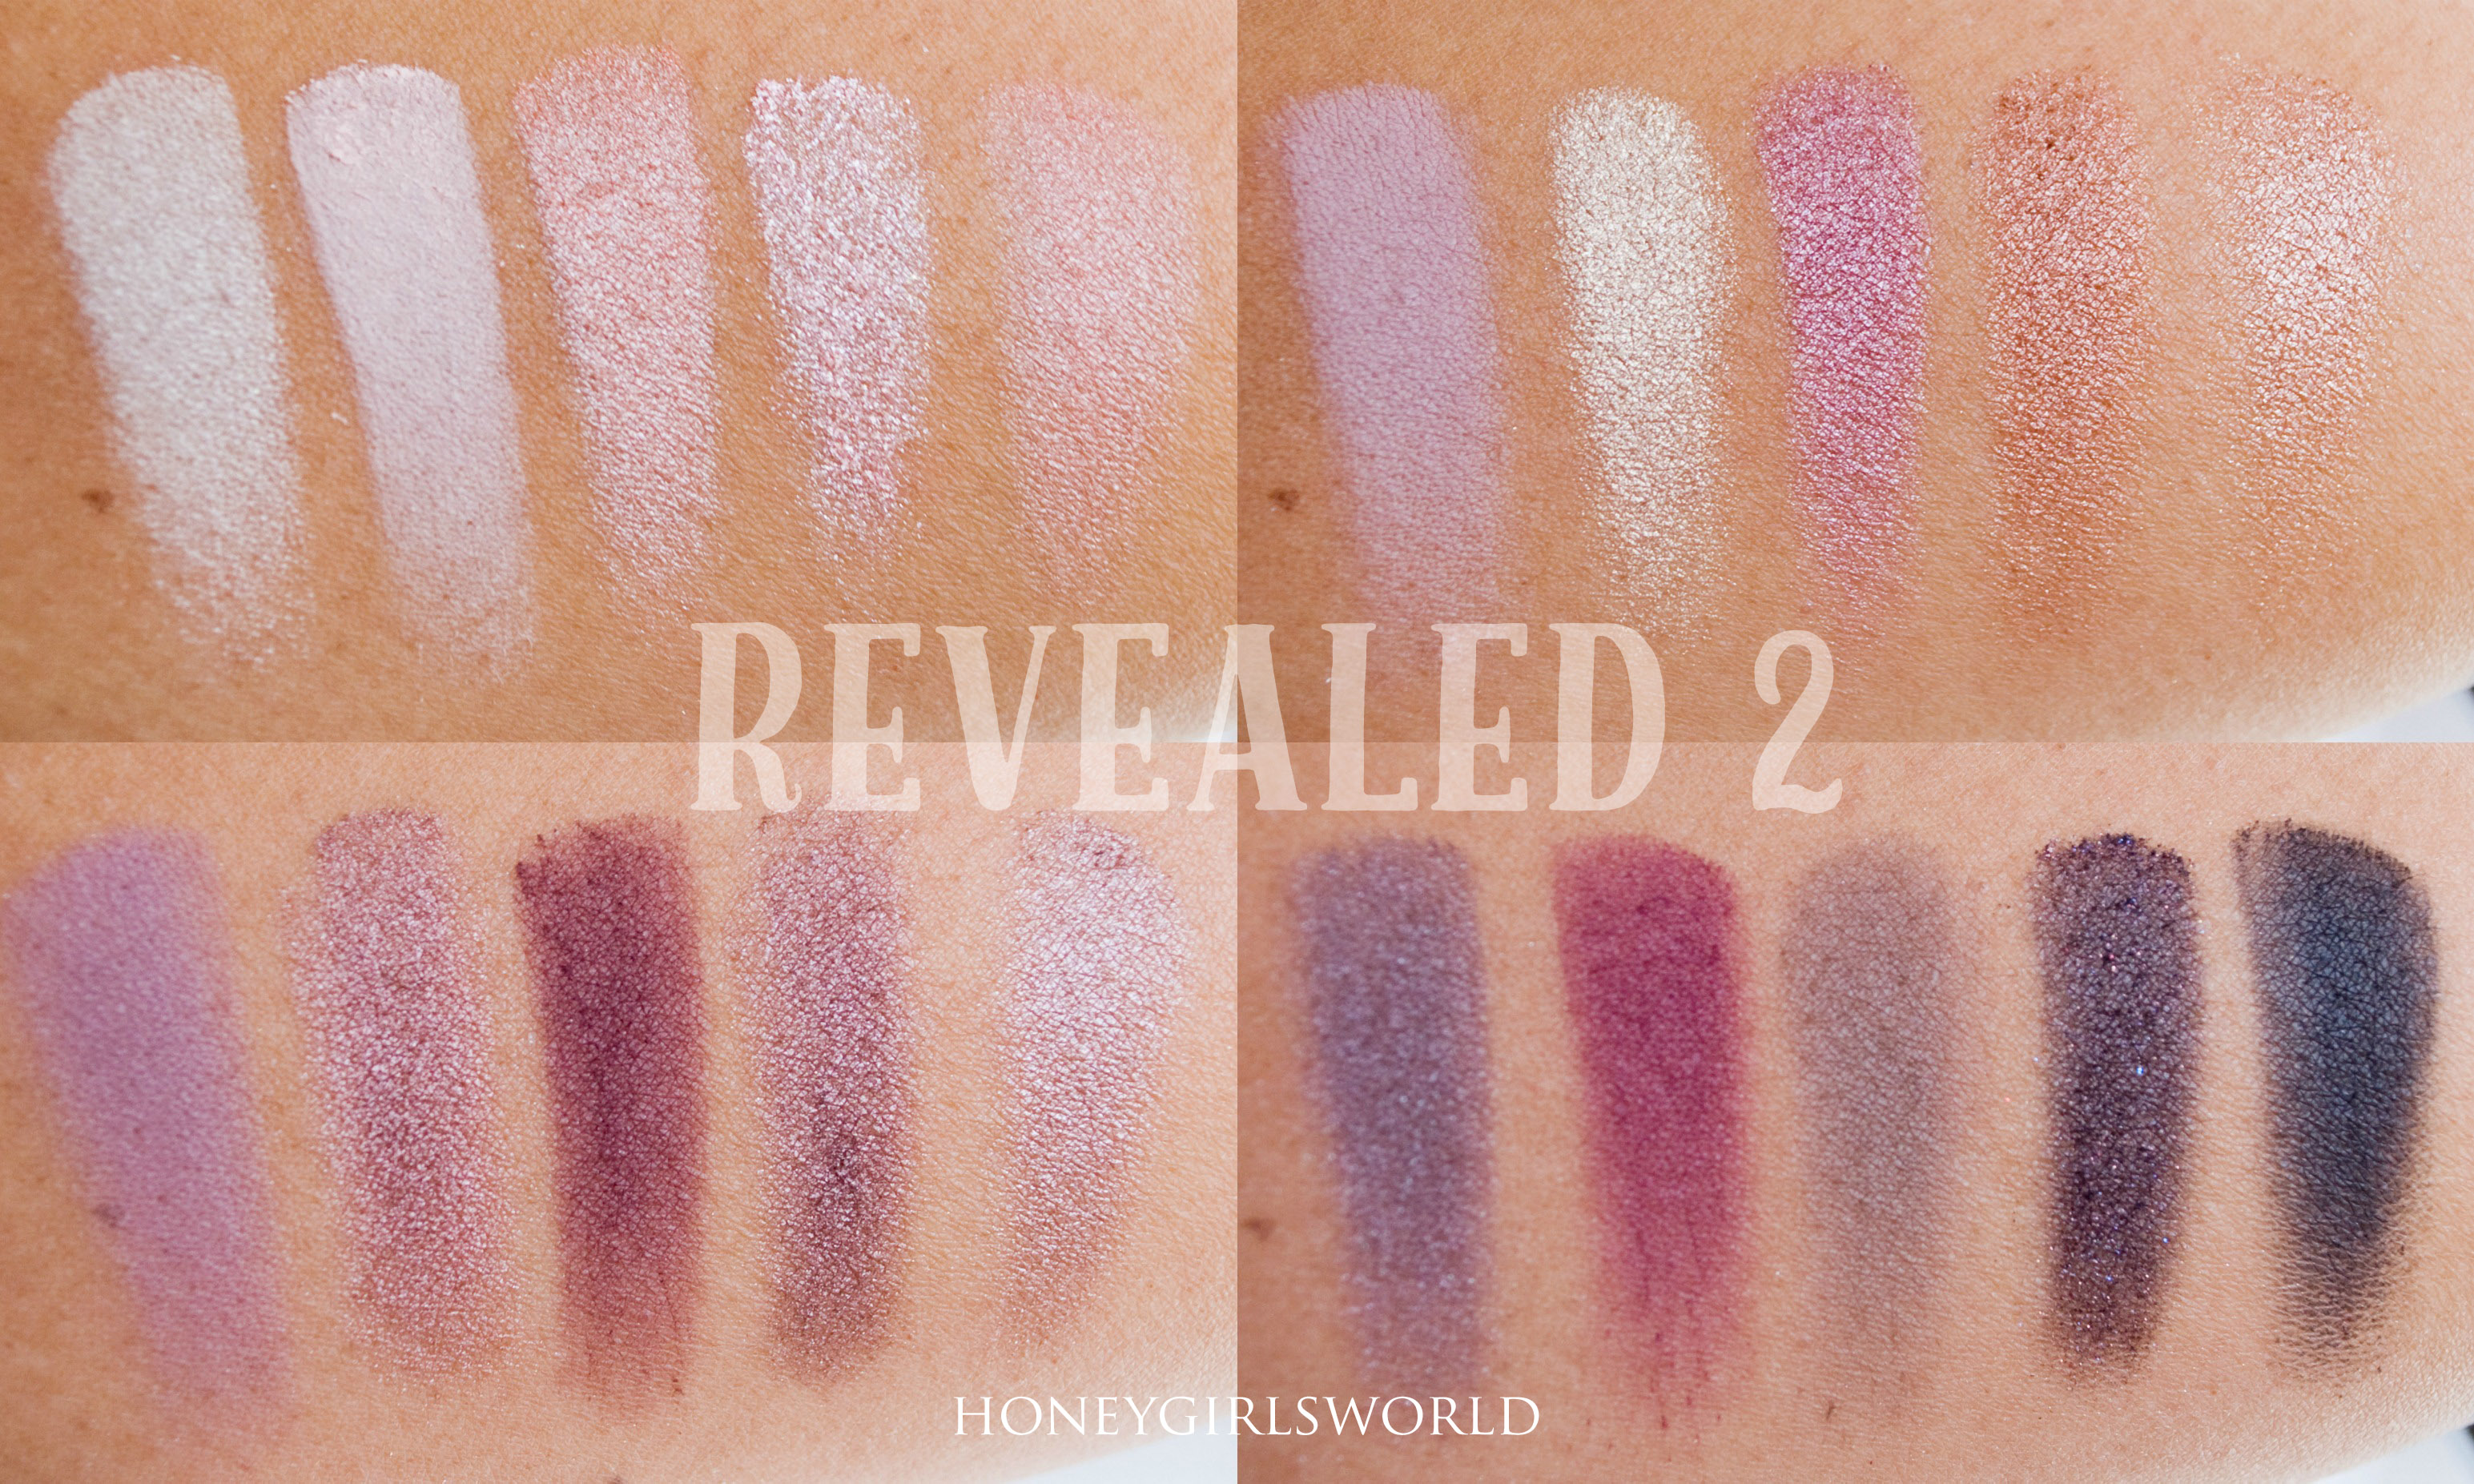 Coastal Scents Revealed 2 swatches